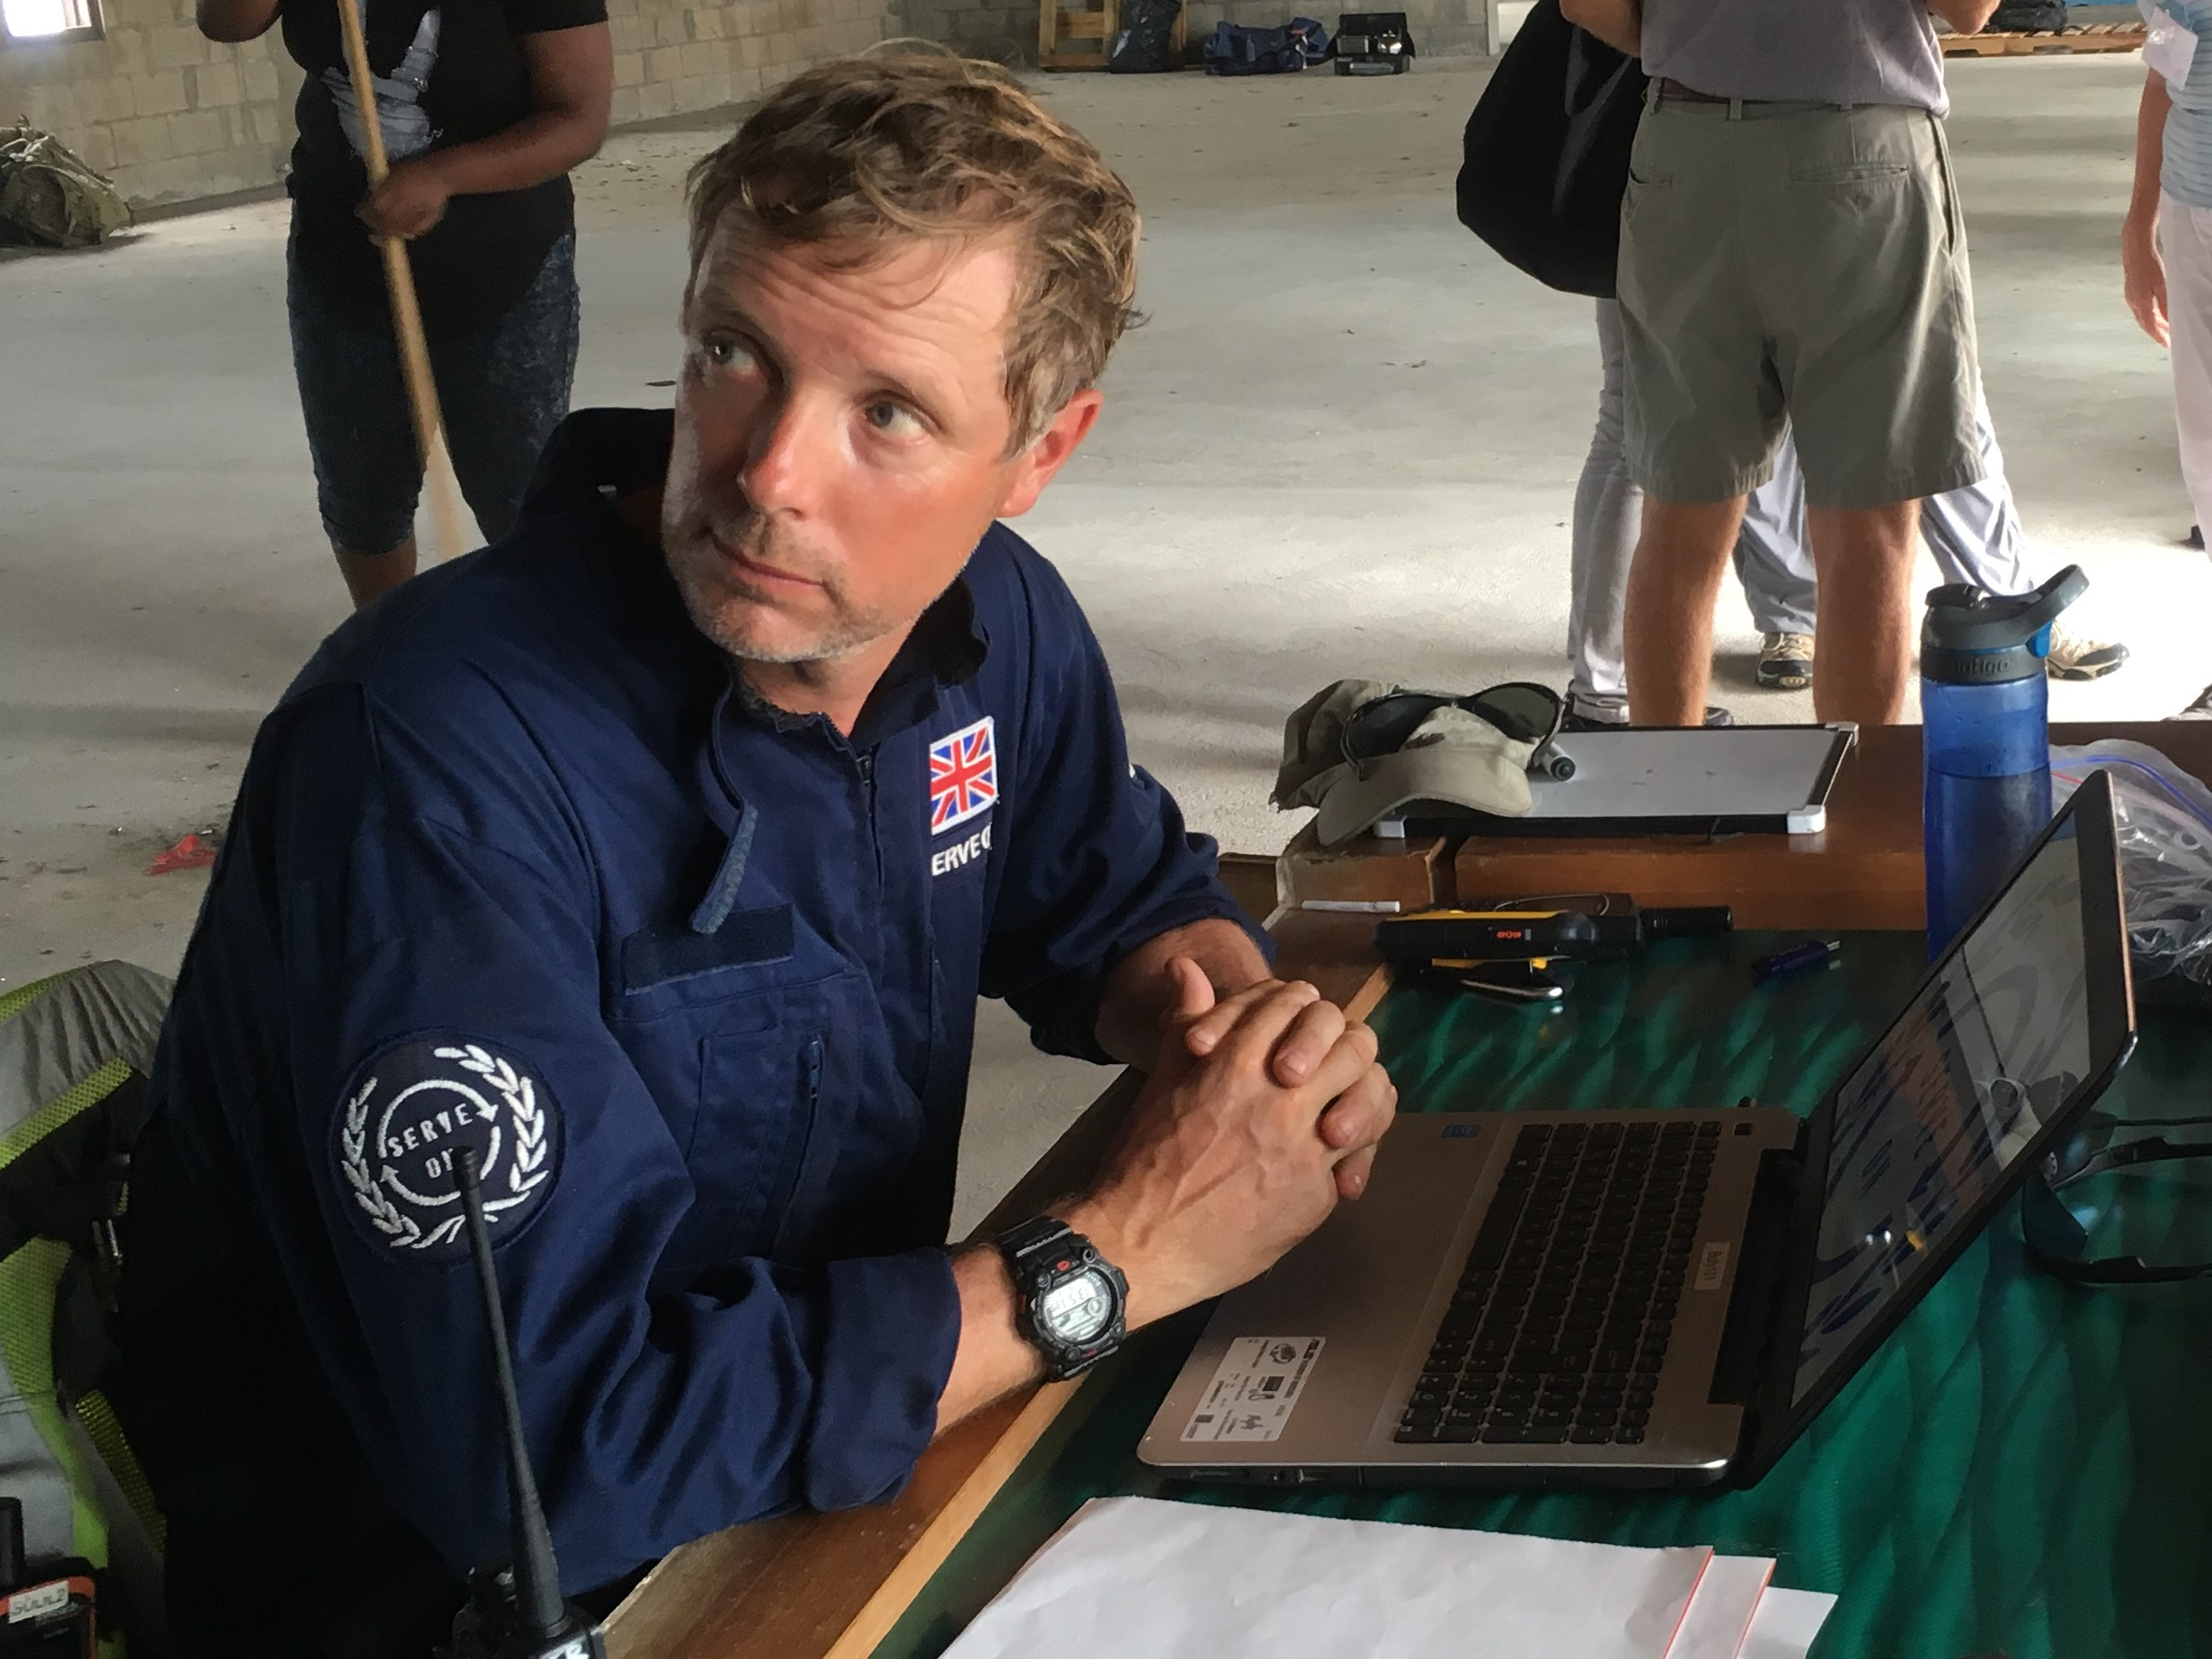 Serve On operations manager Craig provided satellite communications for the local recovery group on Virgin Gorda in the wake of Hurricane Irma in 2017. Now a Serve On team will return to install new radio equipment to help islanders in the event of a future hurricane.